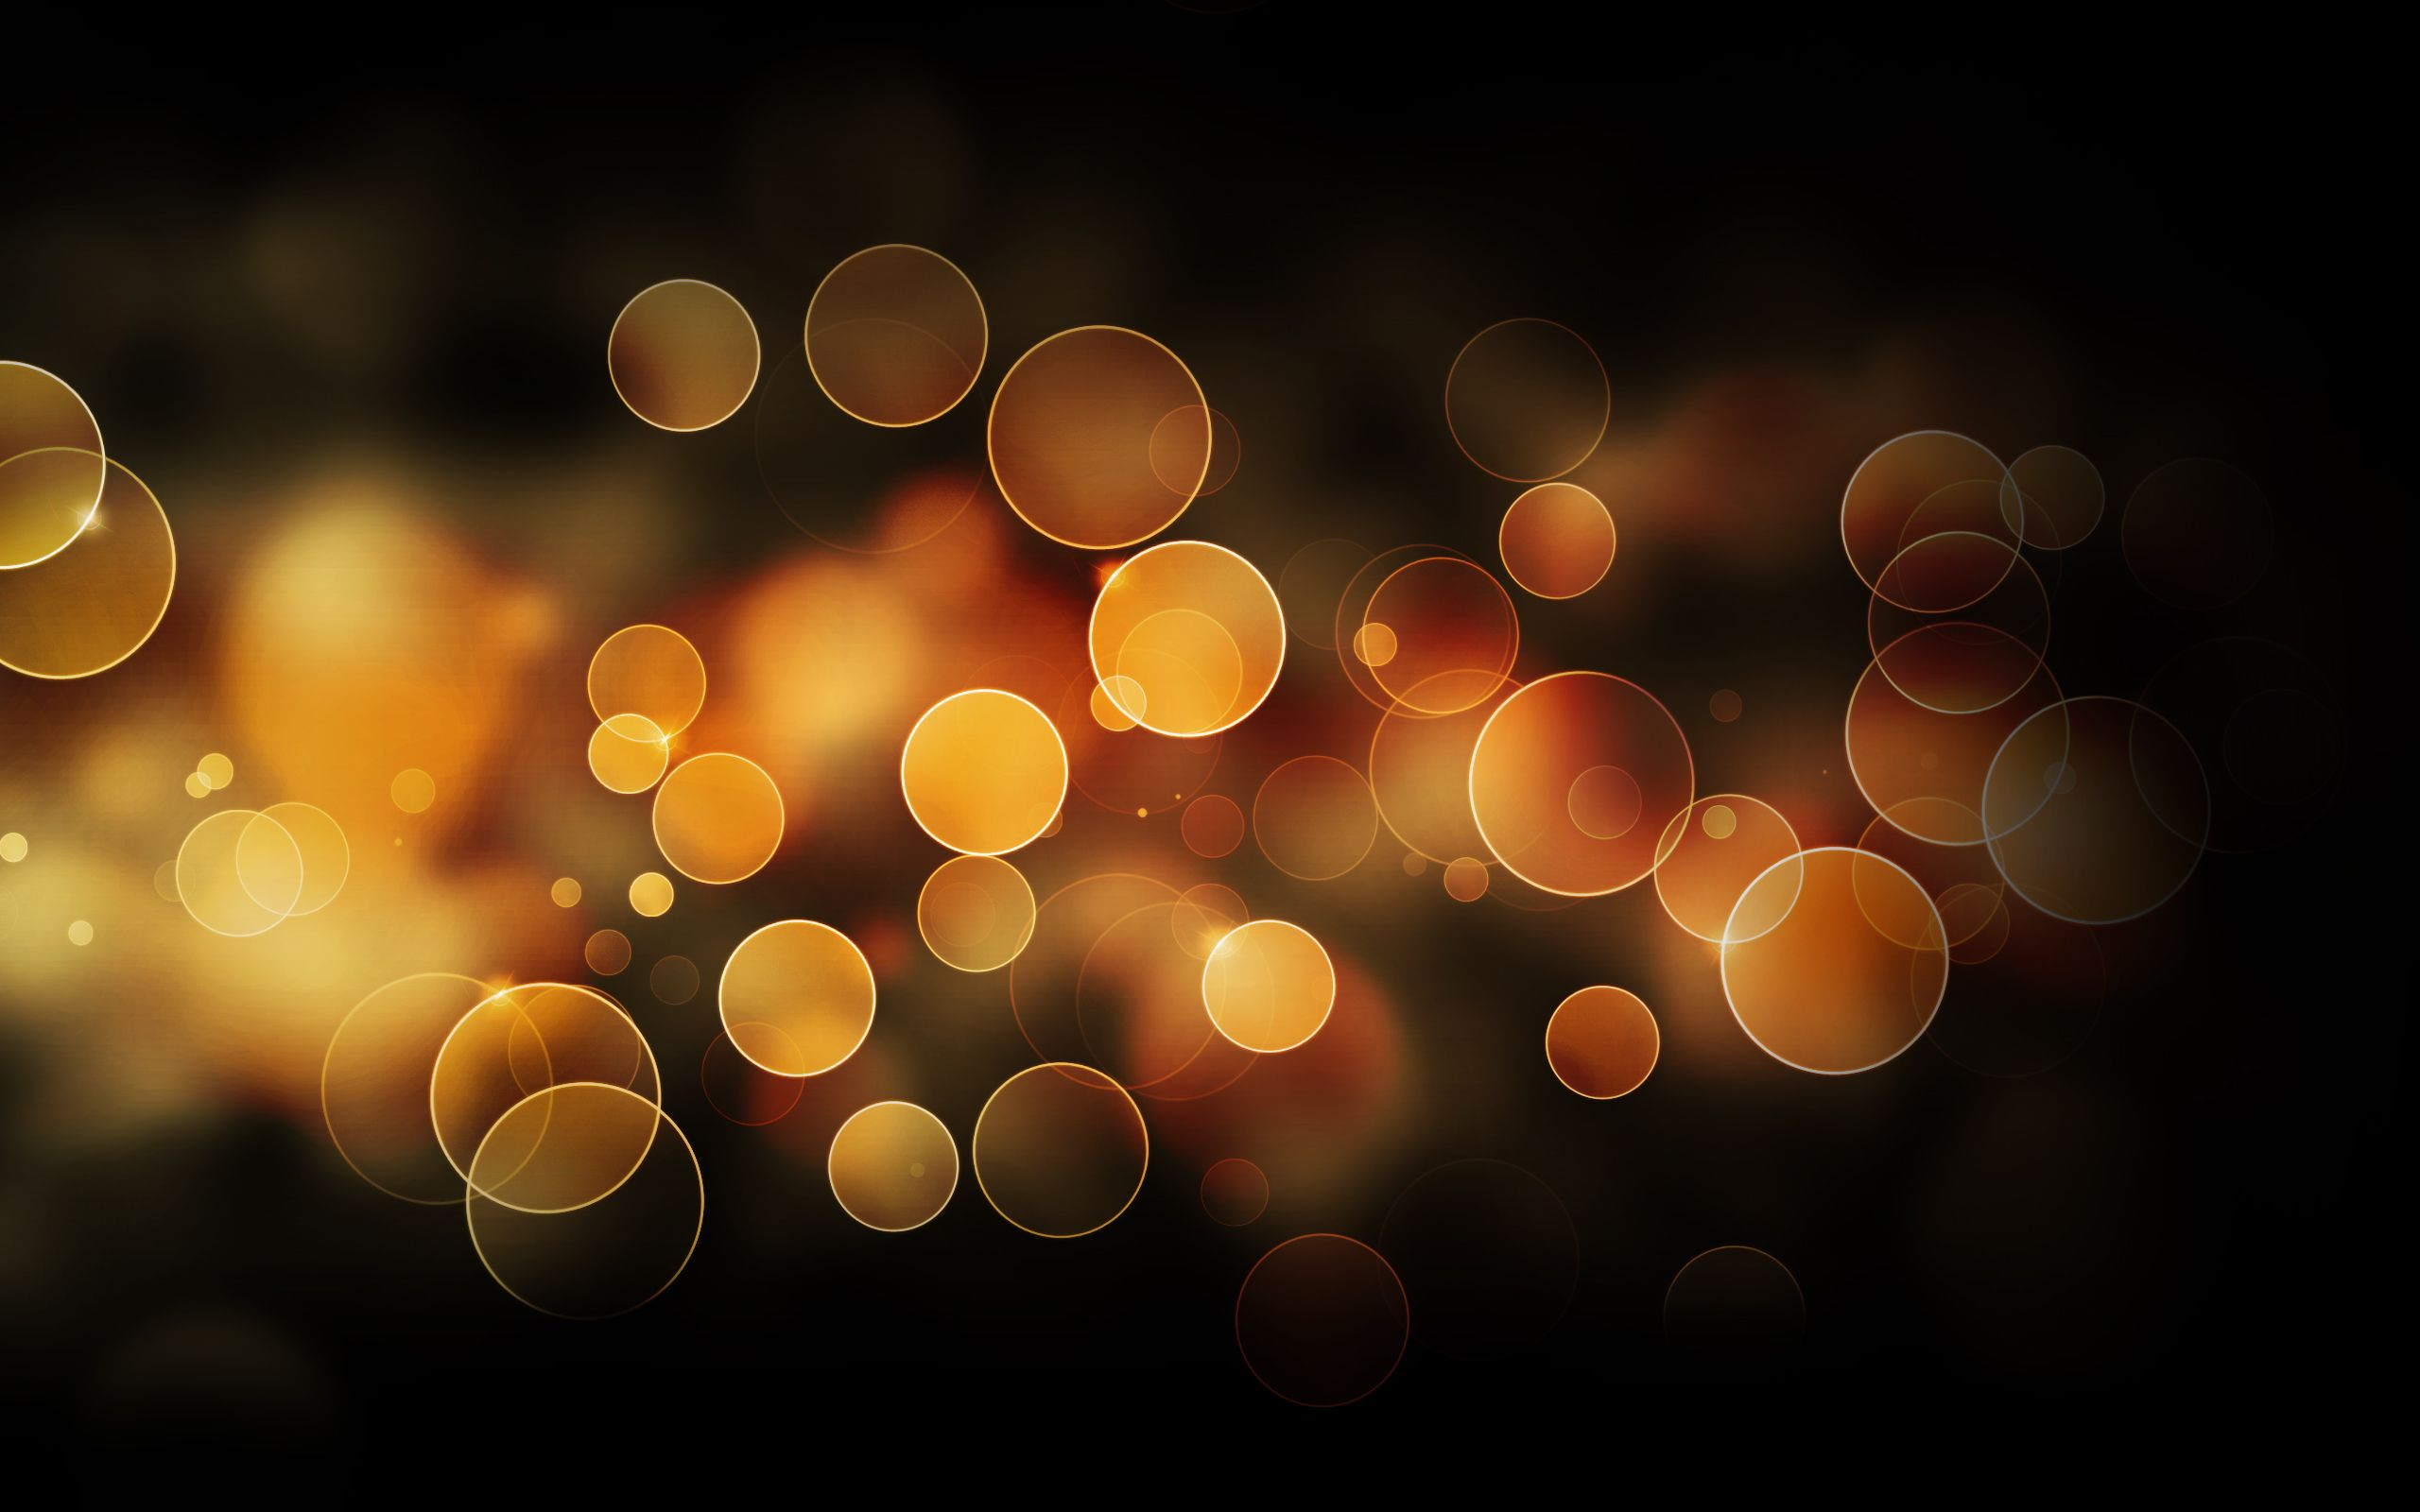 Fresh Bokeh High Quality Wallpaper Download Bokeh